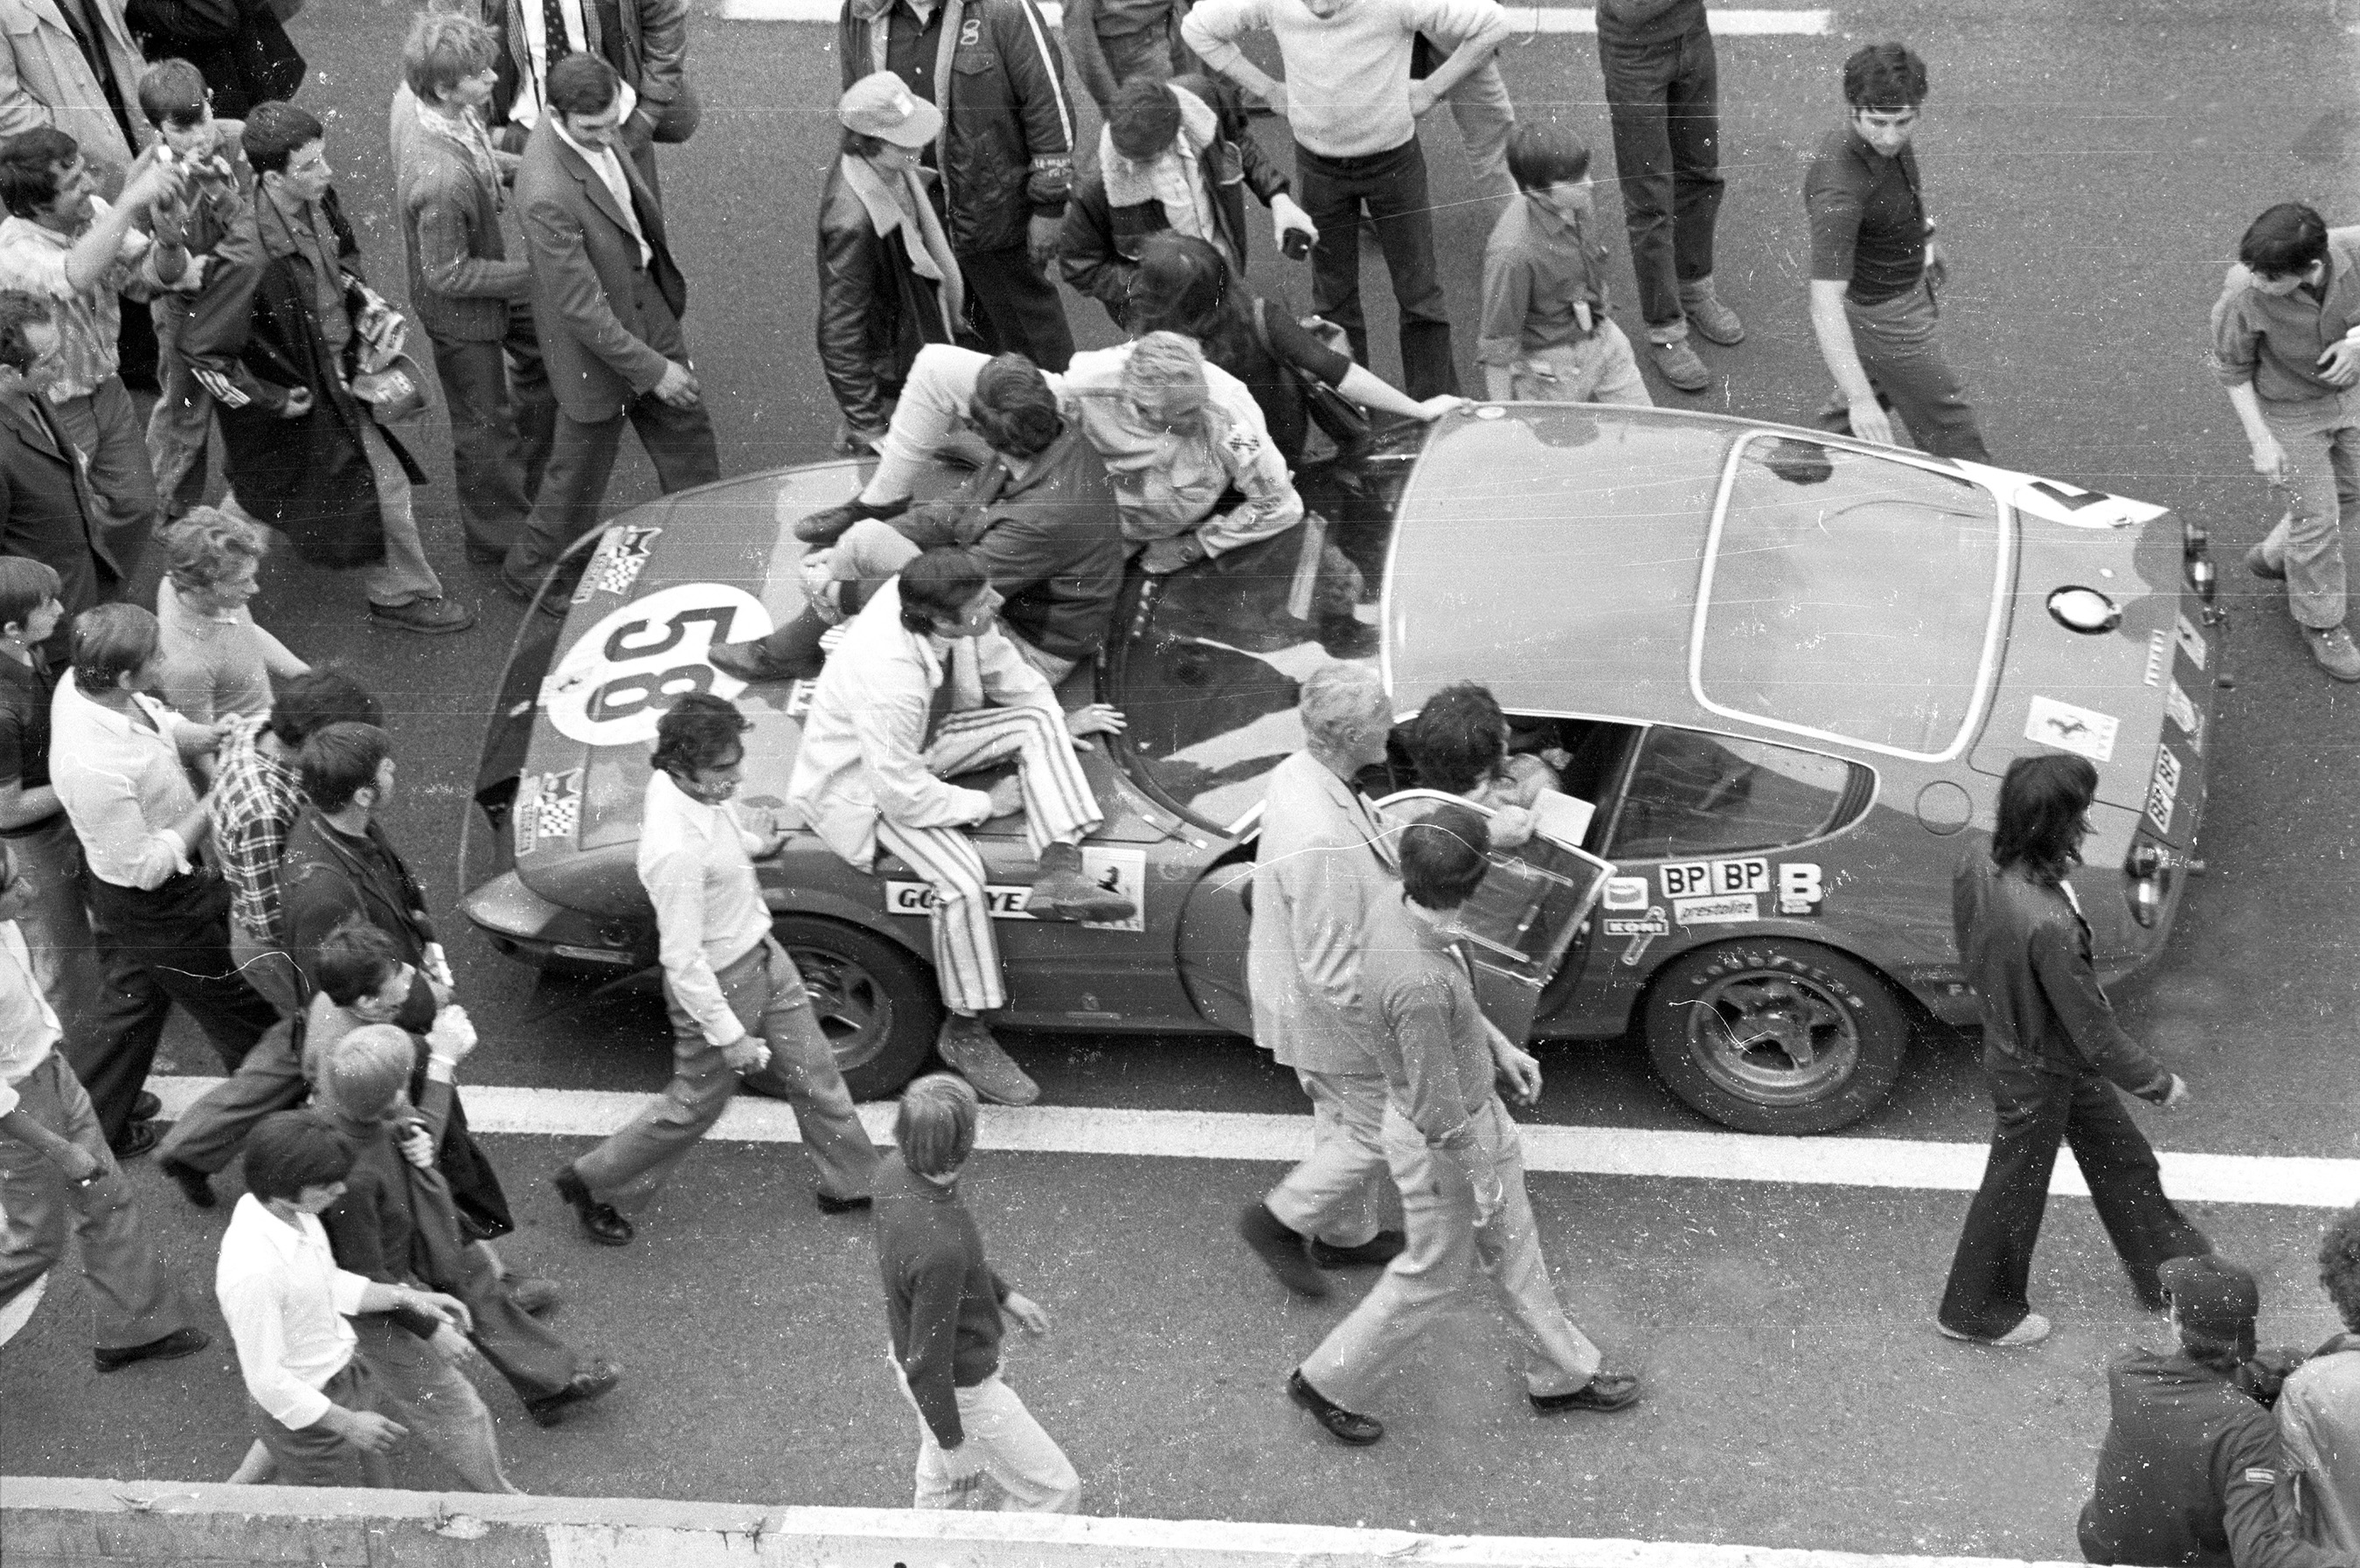 GTB/4 Competition - GT Special Gr.4 Vin 12467 awaits the start of the 1971 24 hours of Le Mans